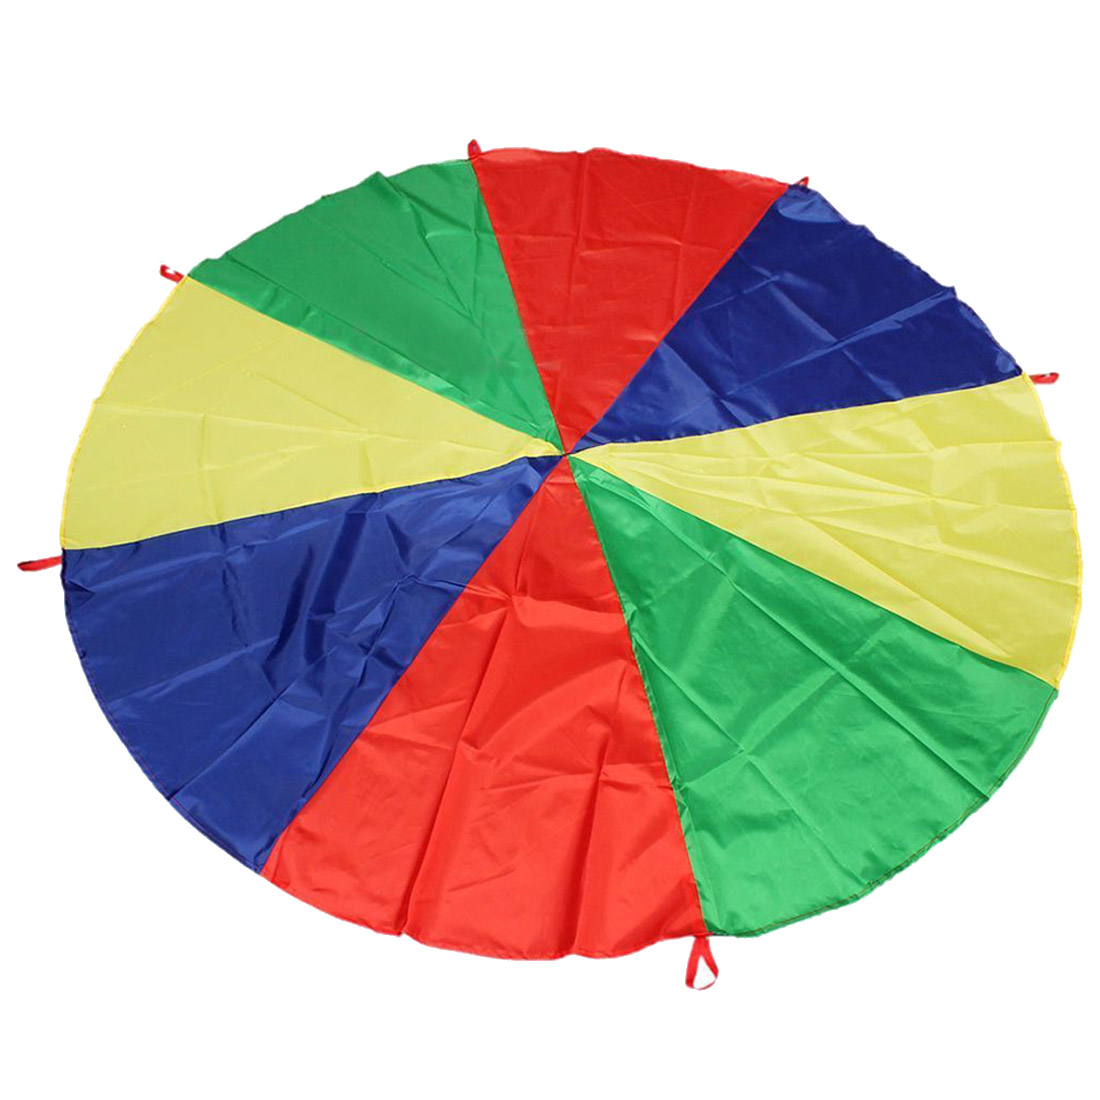 2M/6.5FT Childrens Play Rainbow Parachute Outdoor Game Exercise Sport